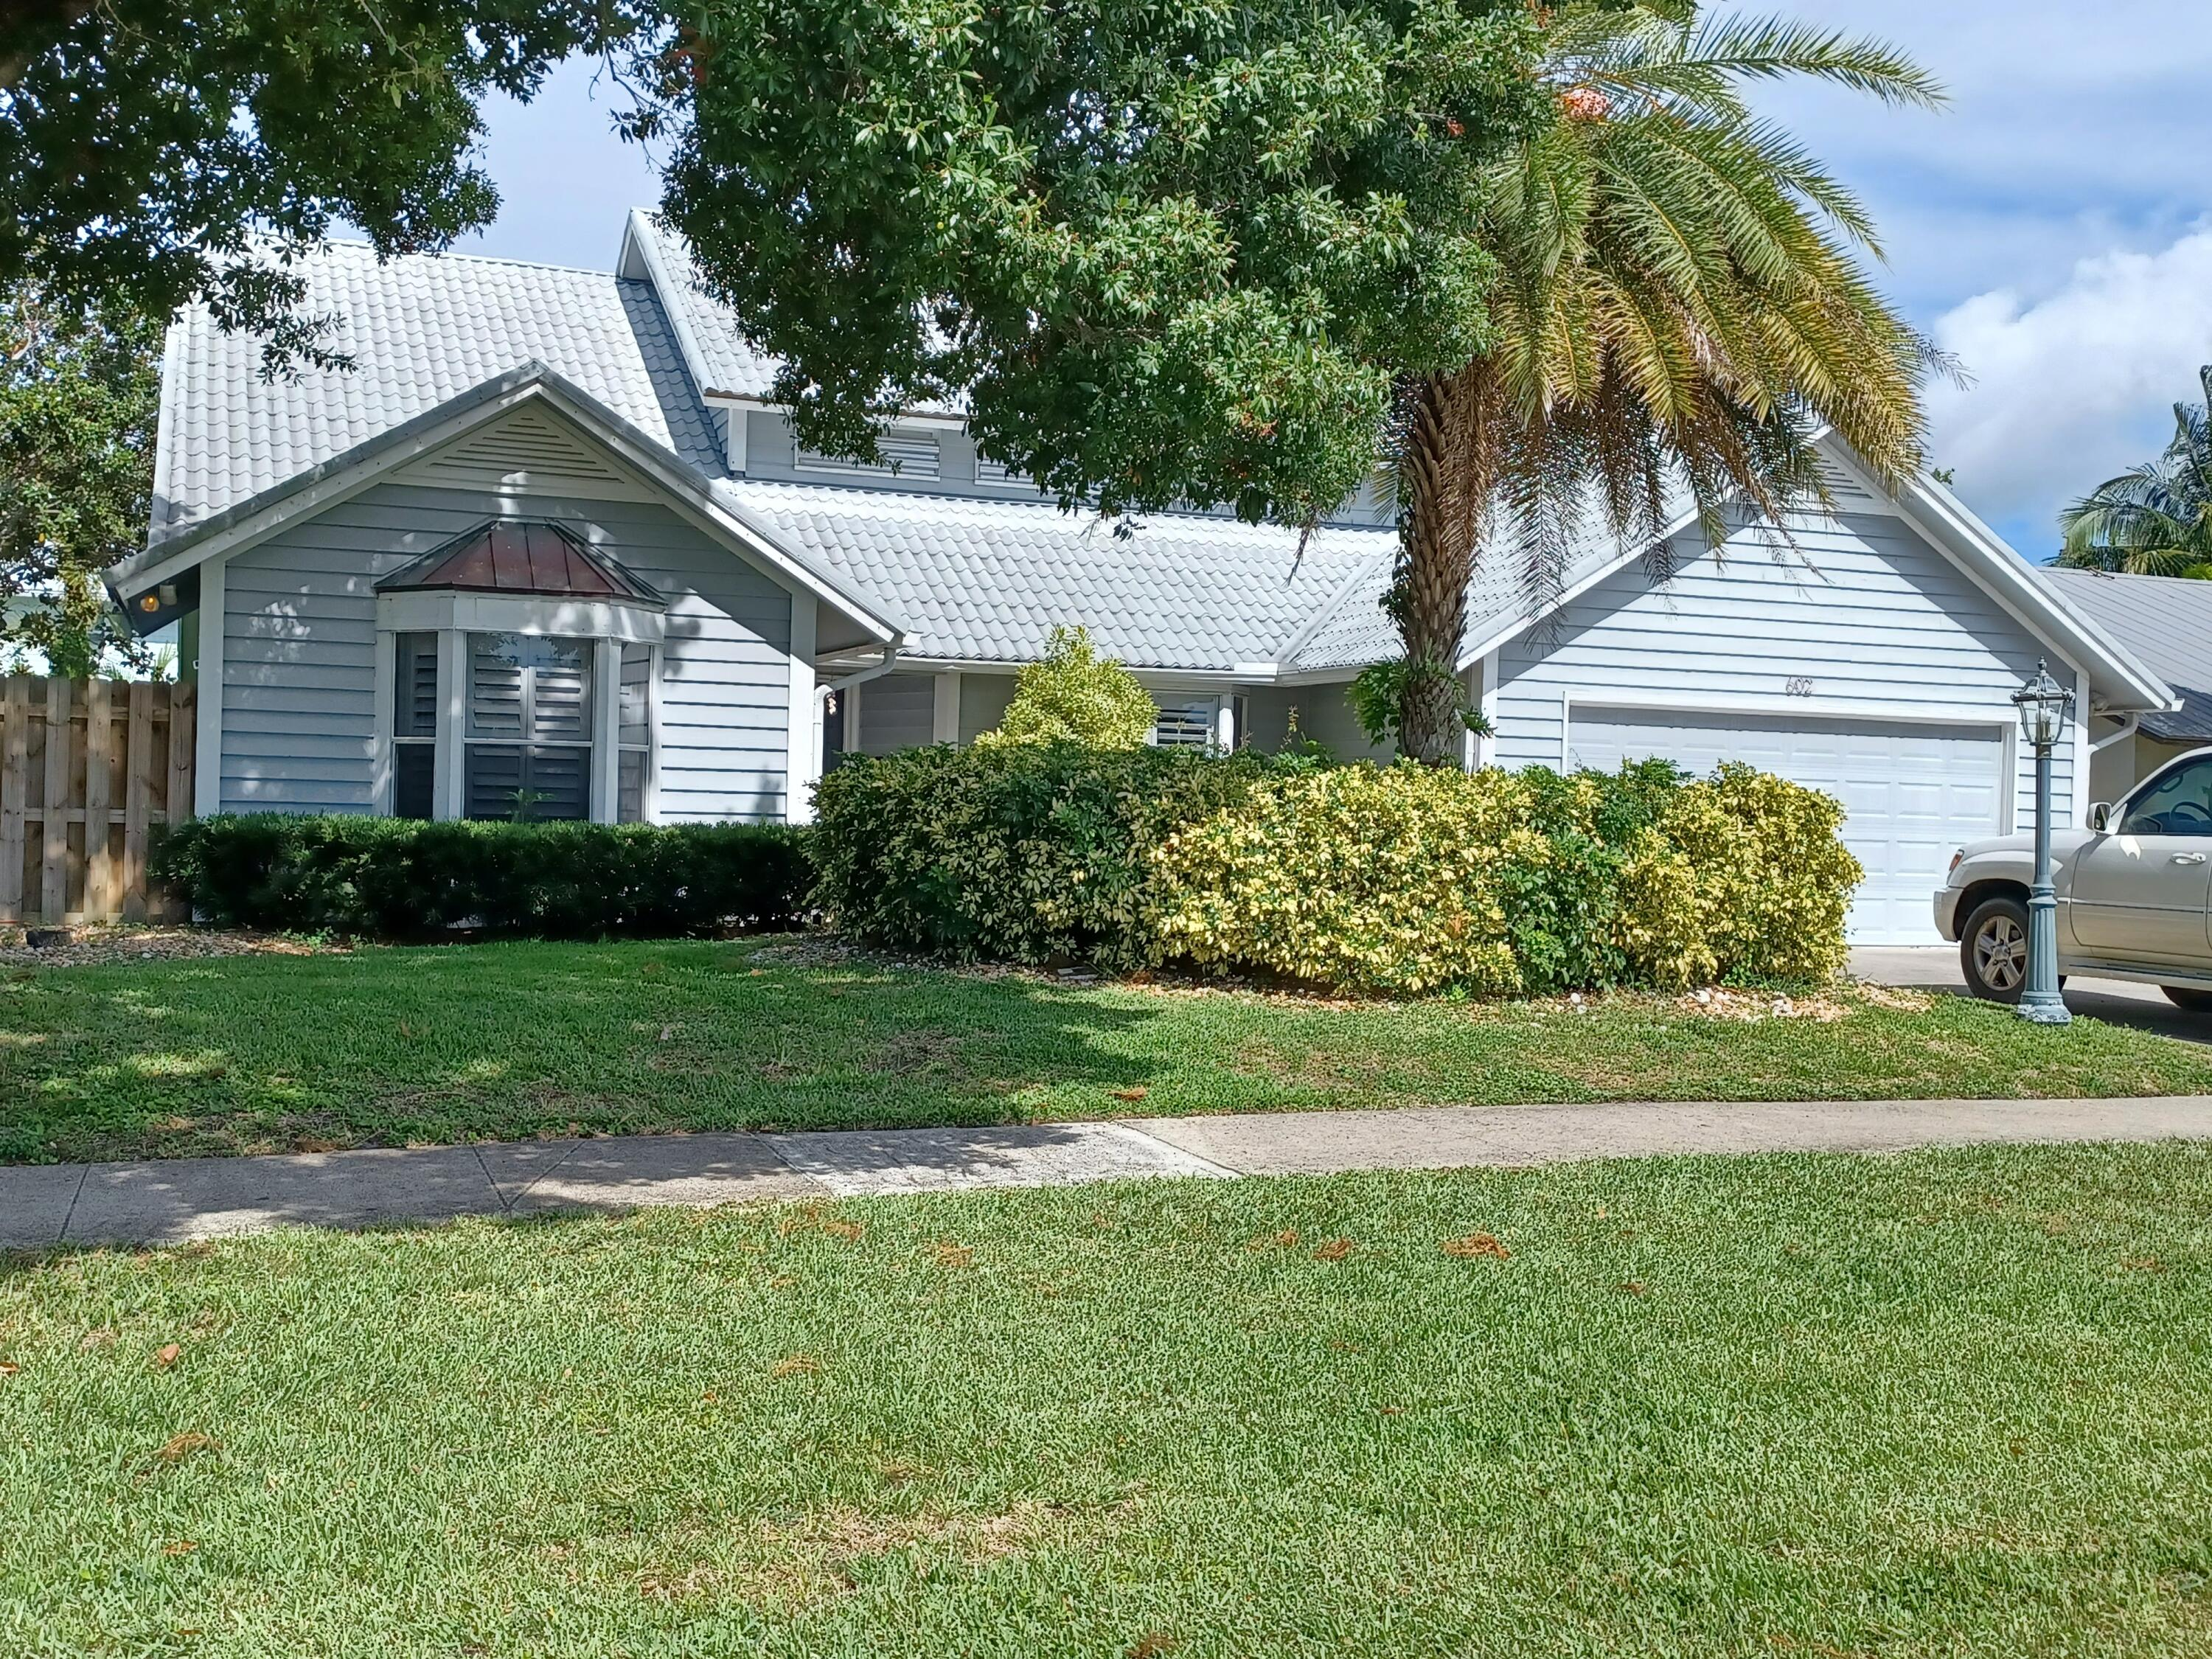 Beautiful custom built Waterfront home in the heart of Jupiter. Home boasts 2 docks and boat lift. Perfect place for any water escape-kayak, paddle board or boat directly to the Loxahatchee River & Intracoastal waterway. Best news: NO HOA. 2 BR, optional 3BR/Den & 2 full baths on the 1st floor, on the 2nd floor you will find your own personal oasis a beautiful master suite with a large deck over looking the pool. New floors, bathrooms remodeled, refinished kitchen cabinets, granite counters, backsplash, new hardware, new pool filter, cleaner & heater, new AC unit & lovely lightening. Exceptional floor plan has large family room with wood burning fireplace, stone hearth & wet bar. Great entertaining House. Lovely pool with screened deck area.